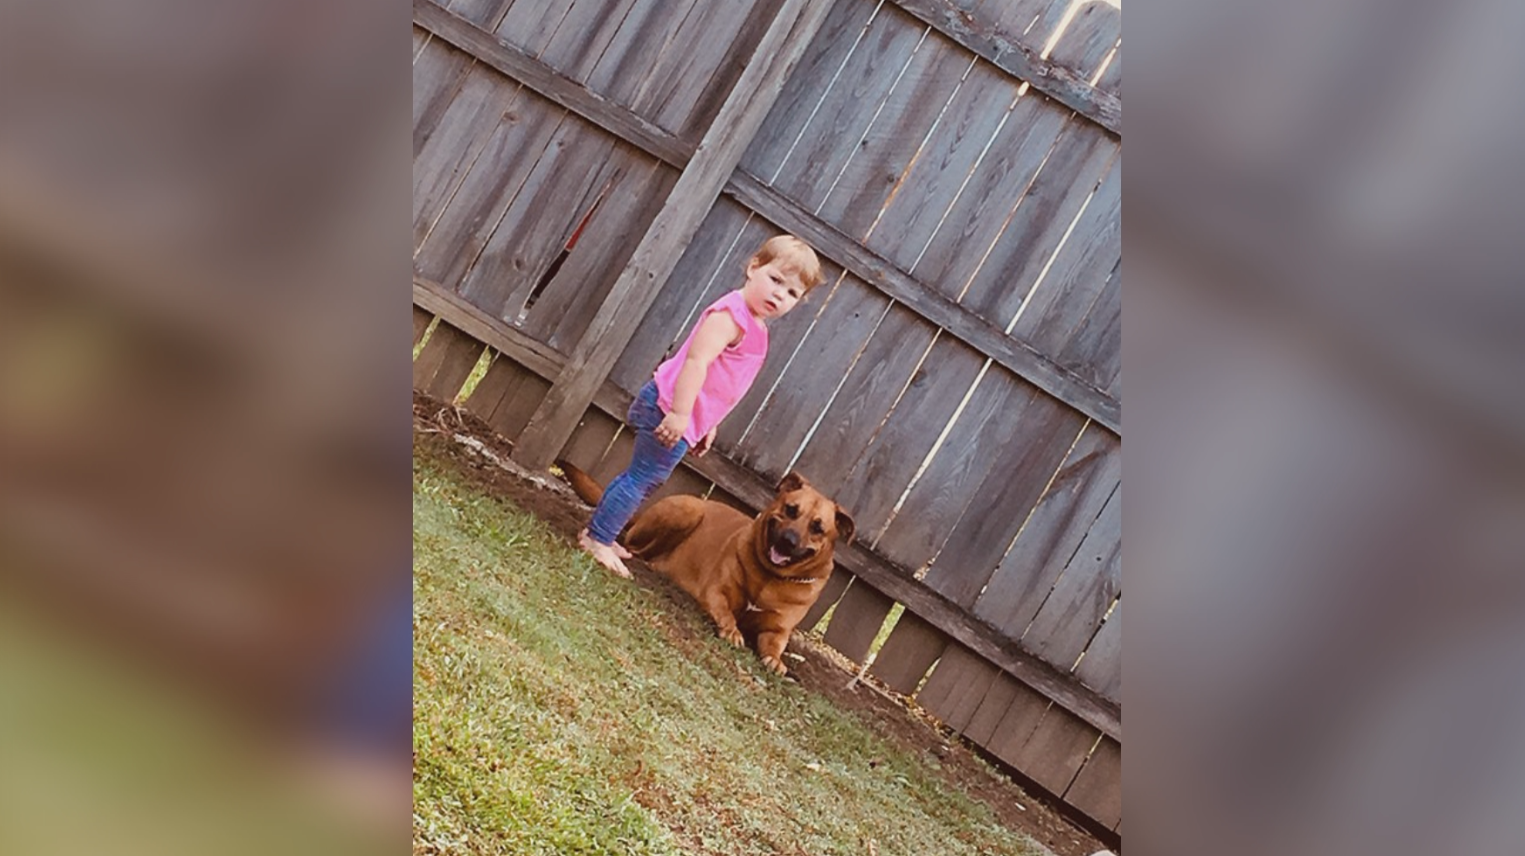 Grandfather mauled while rescuing 2-year-old from family dog